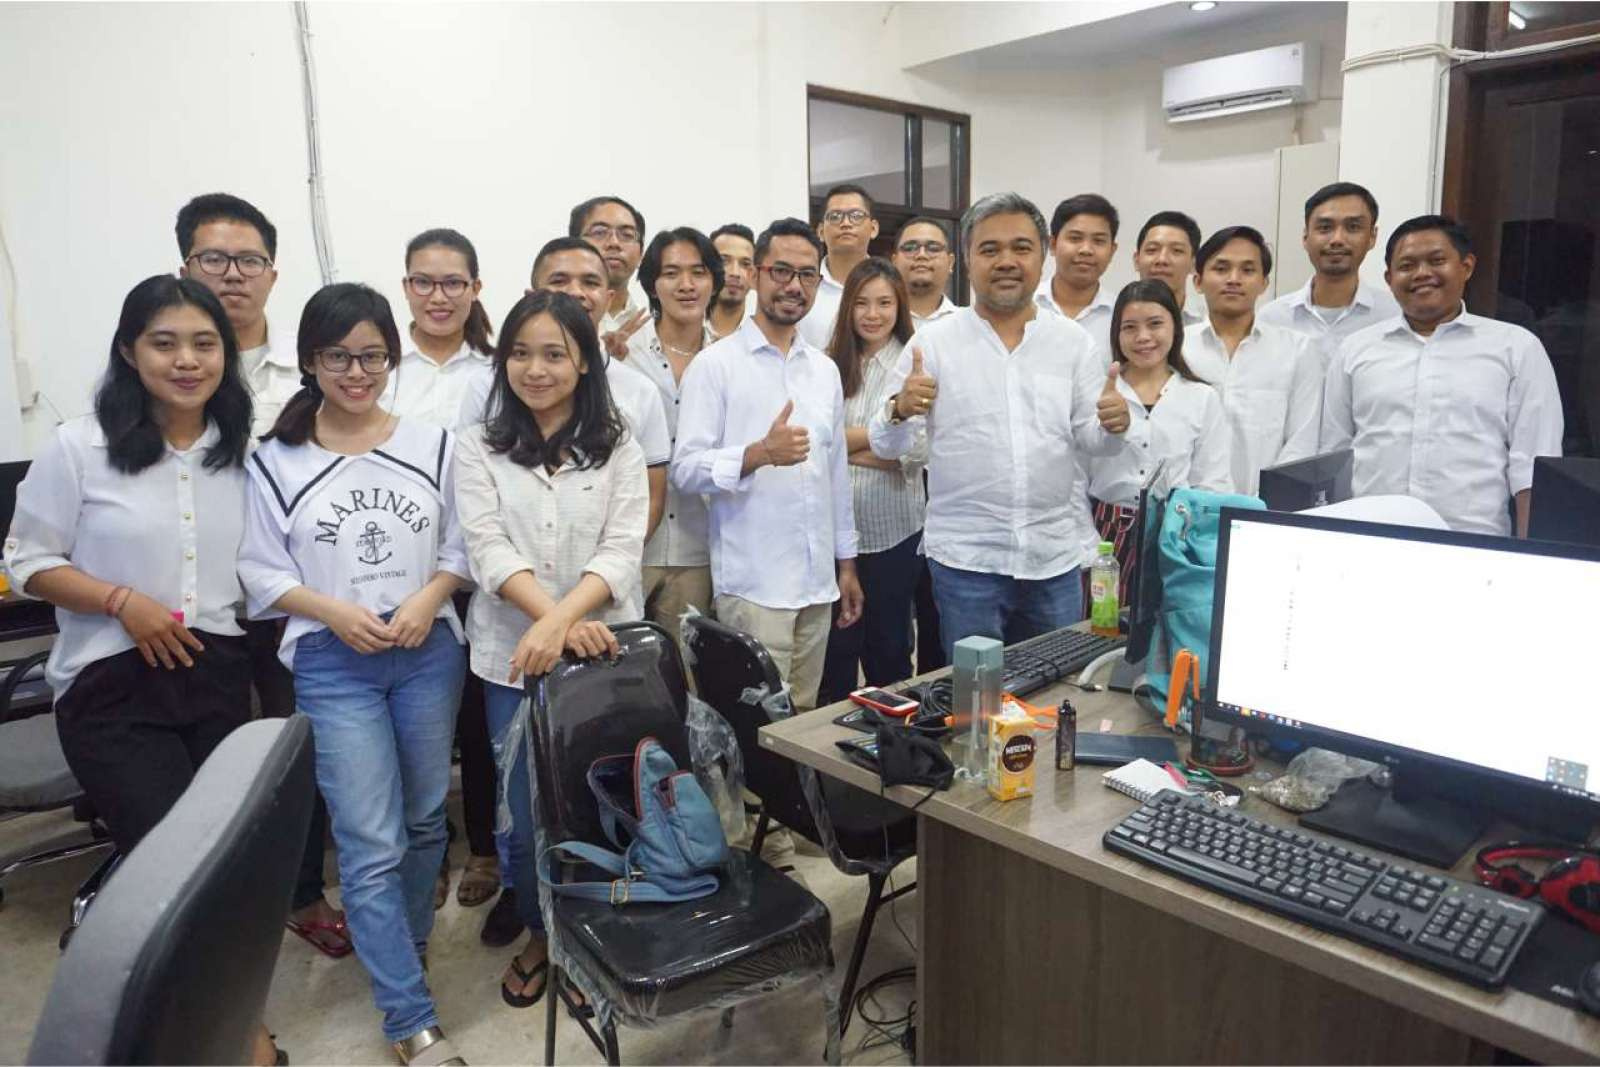 Photo with the Emporio Bali Architect Team Before Working From Home Because of the COVID-19 Virus Pa 1